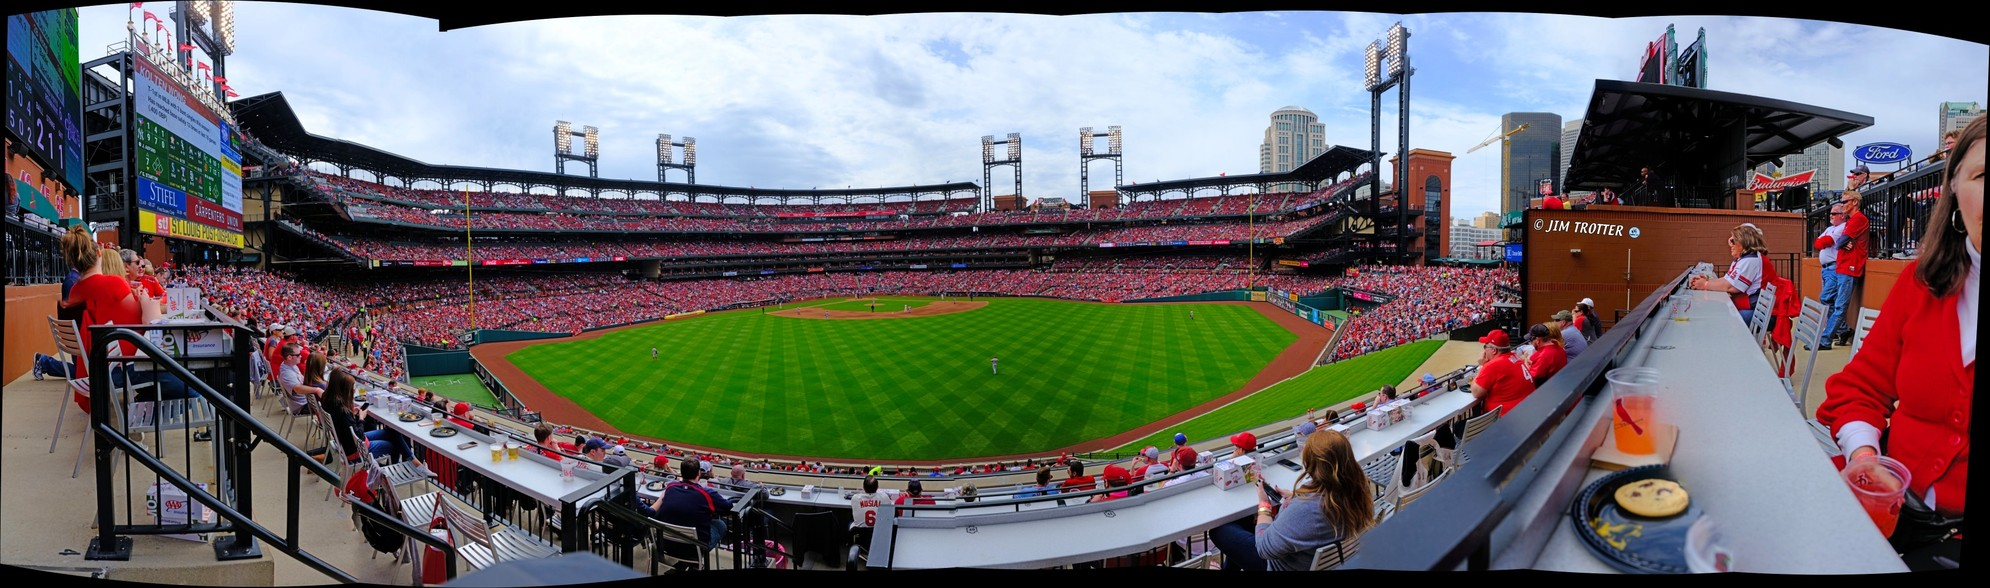 Busch Stadium-St Louis